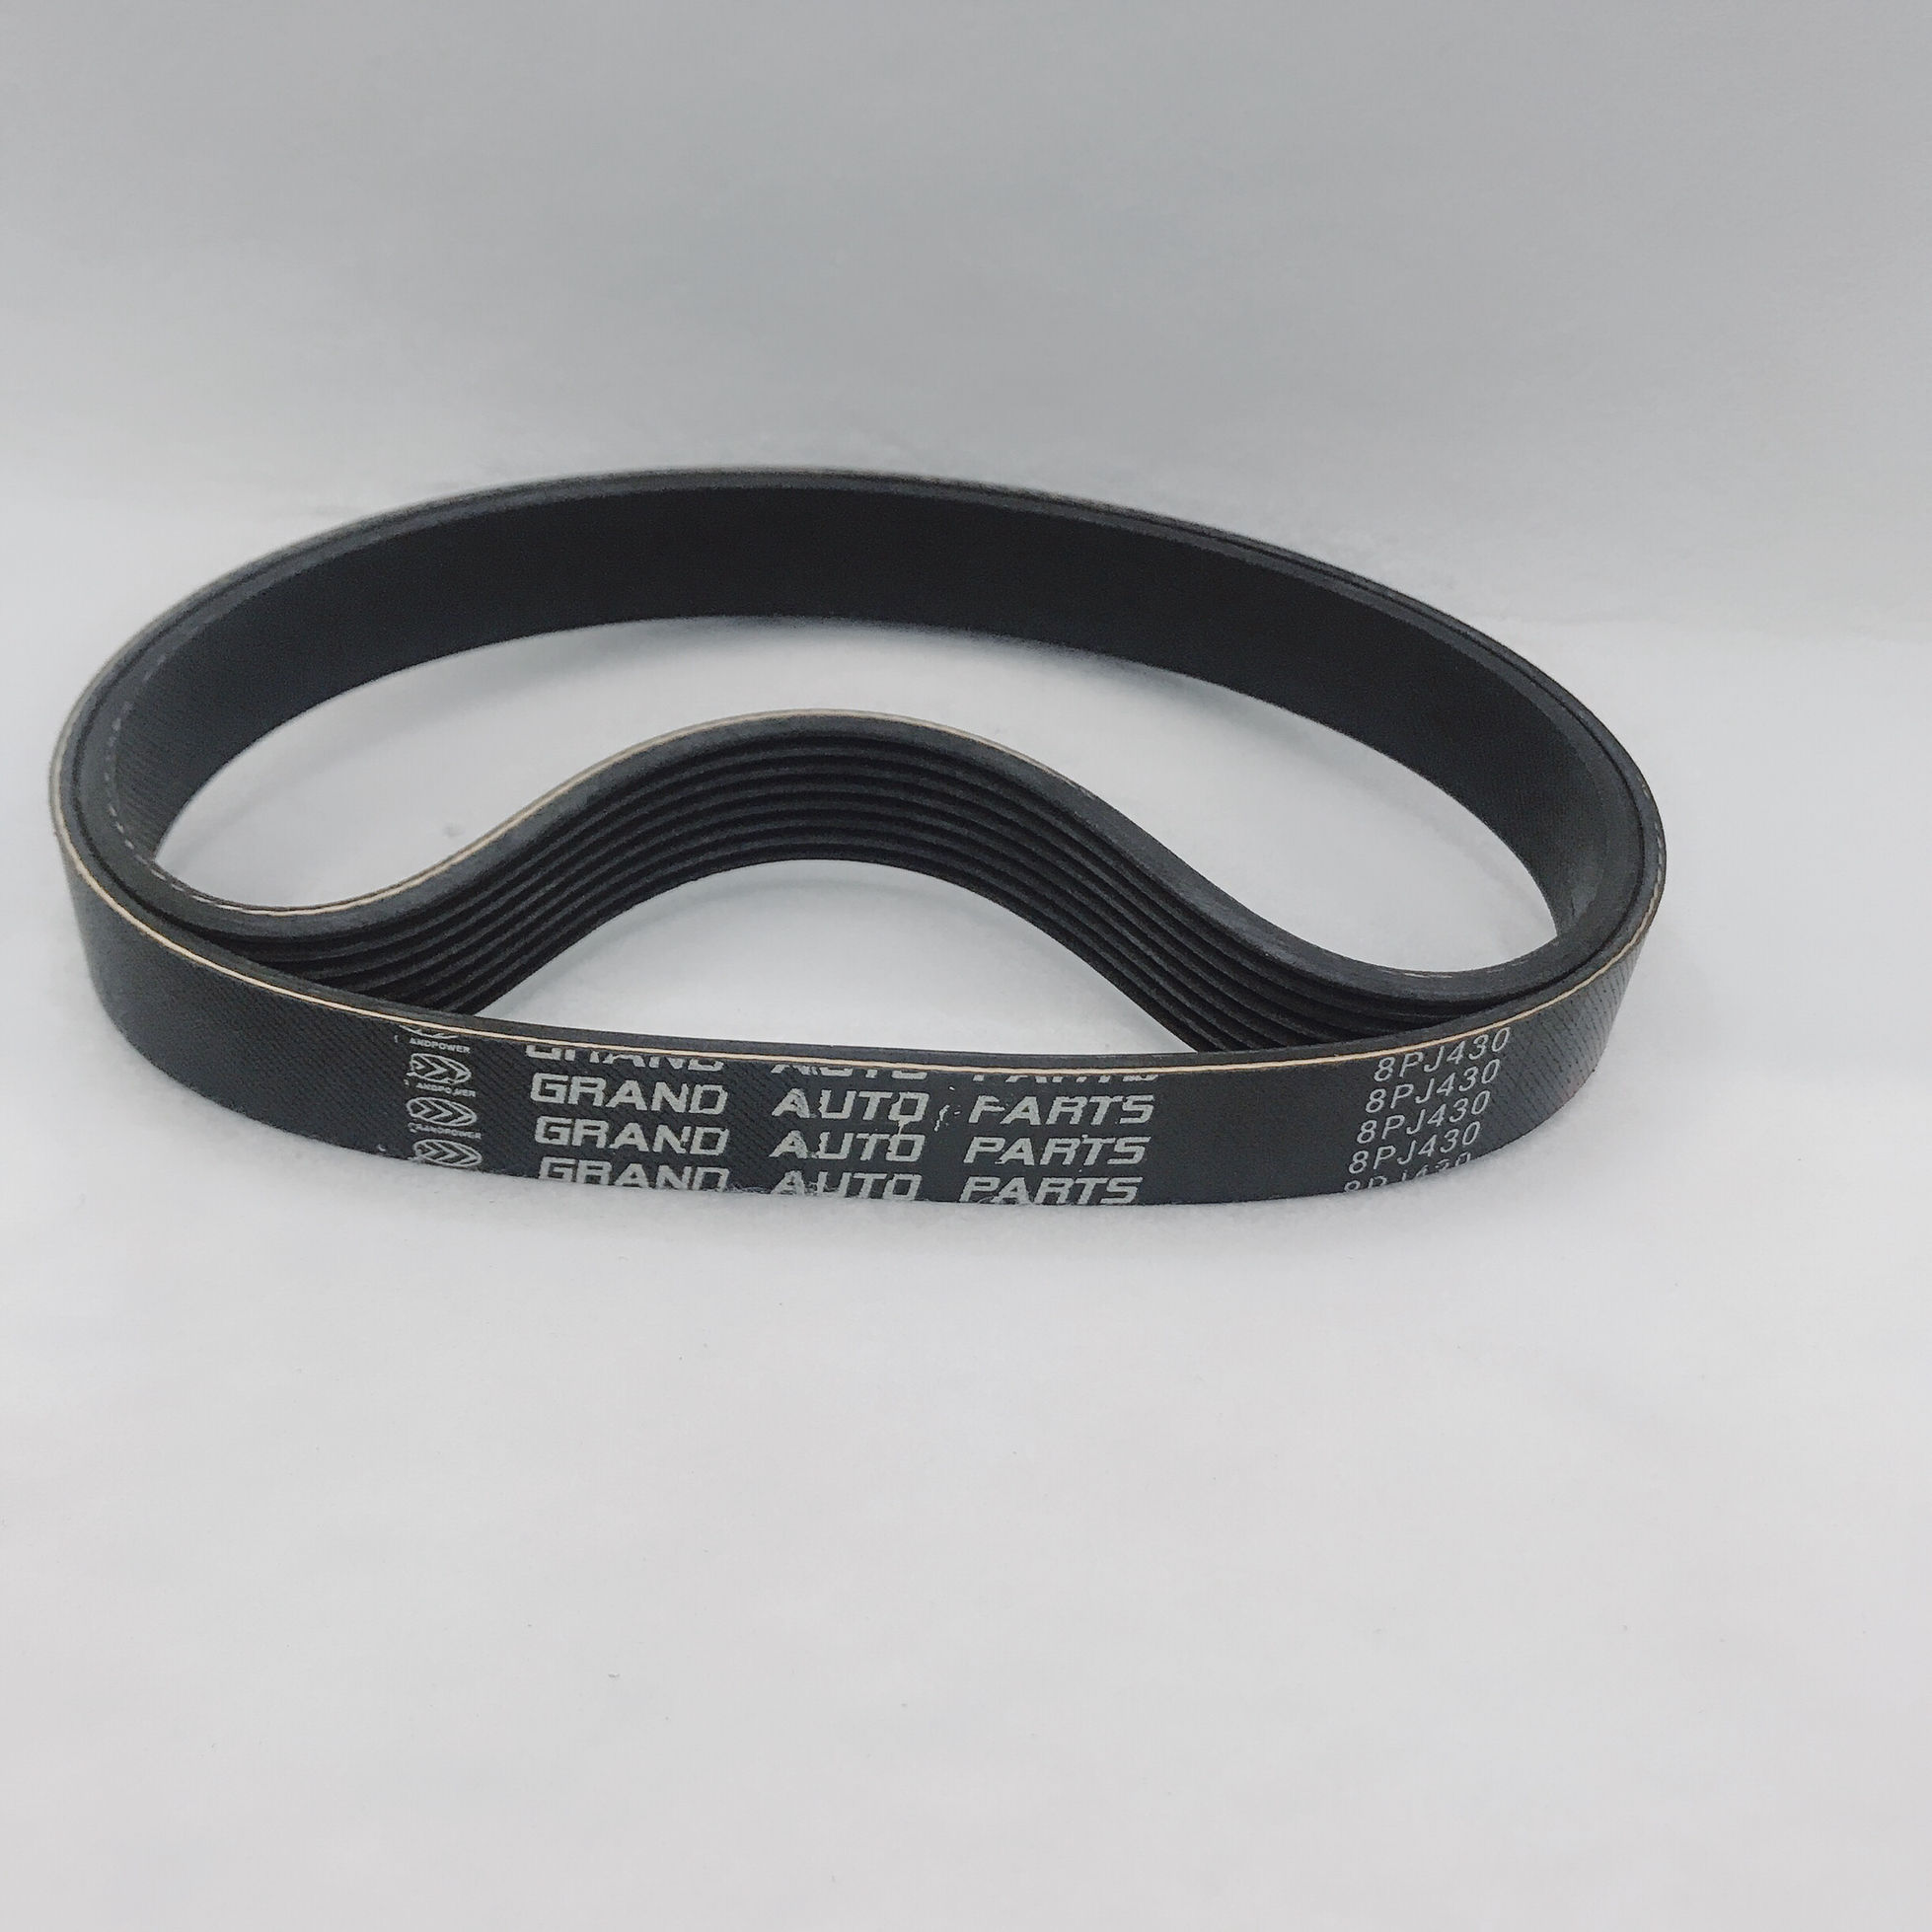 riibbed power transmission belt poly v belt (PH PJ PK PL PM DPK available)